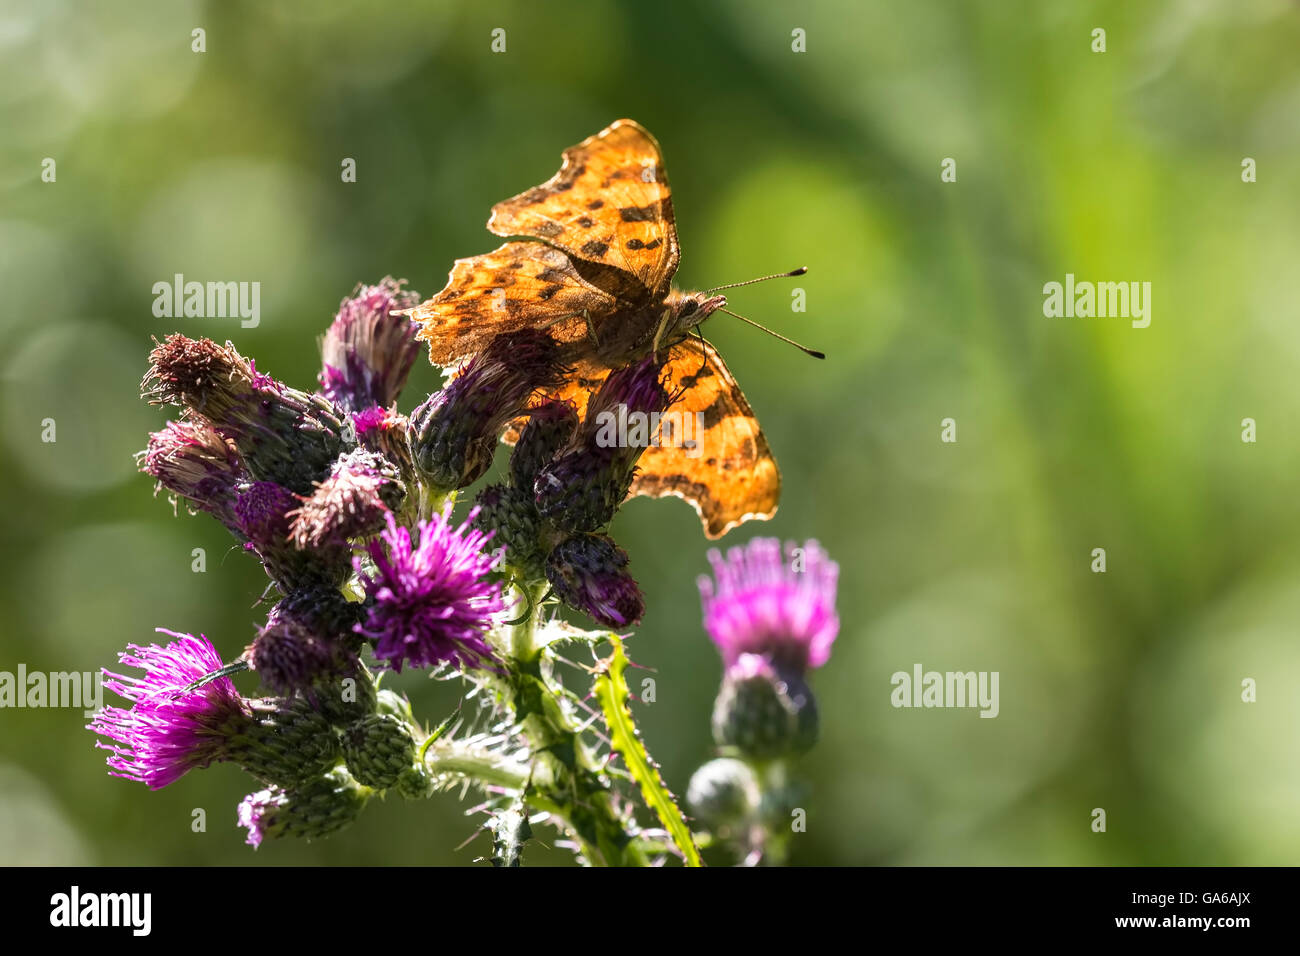 Comma butterfly (Polygonia c-album) feeding on purple thistle flower on a sunny summer day - Stock Image